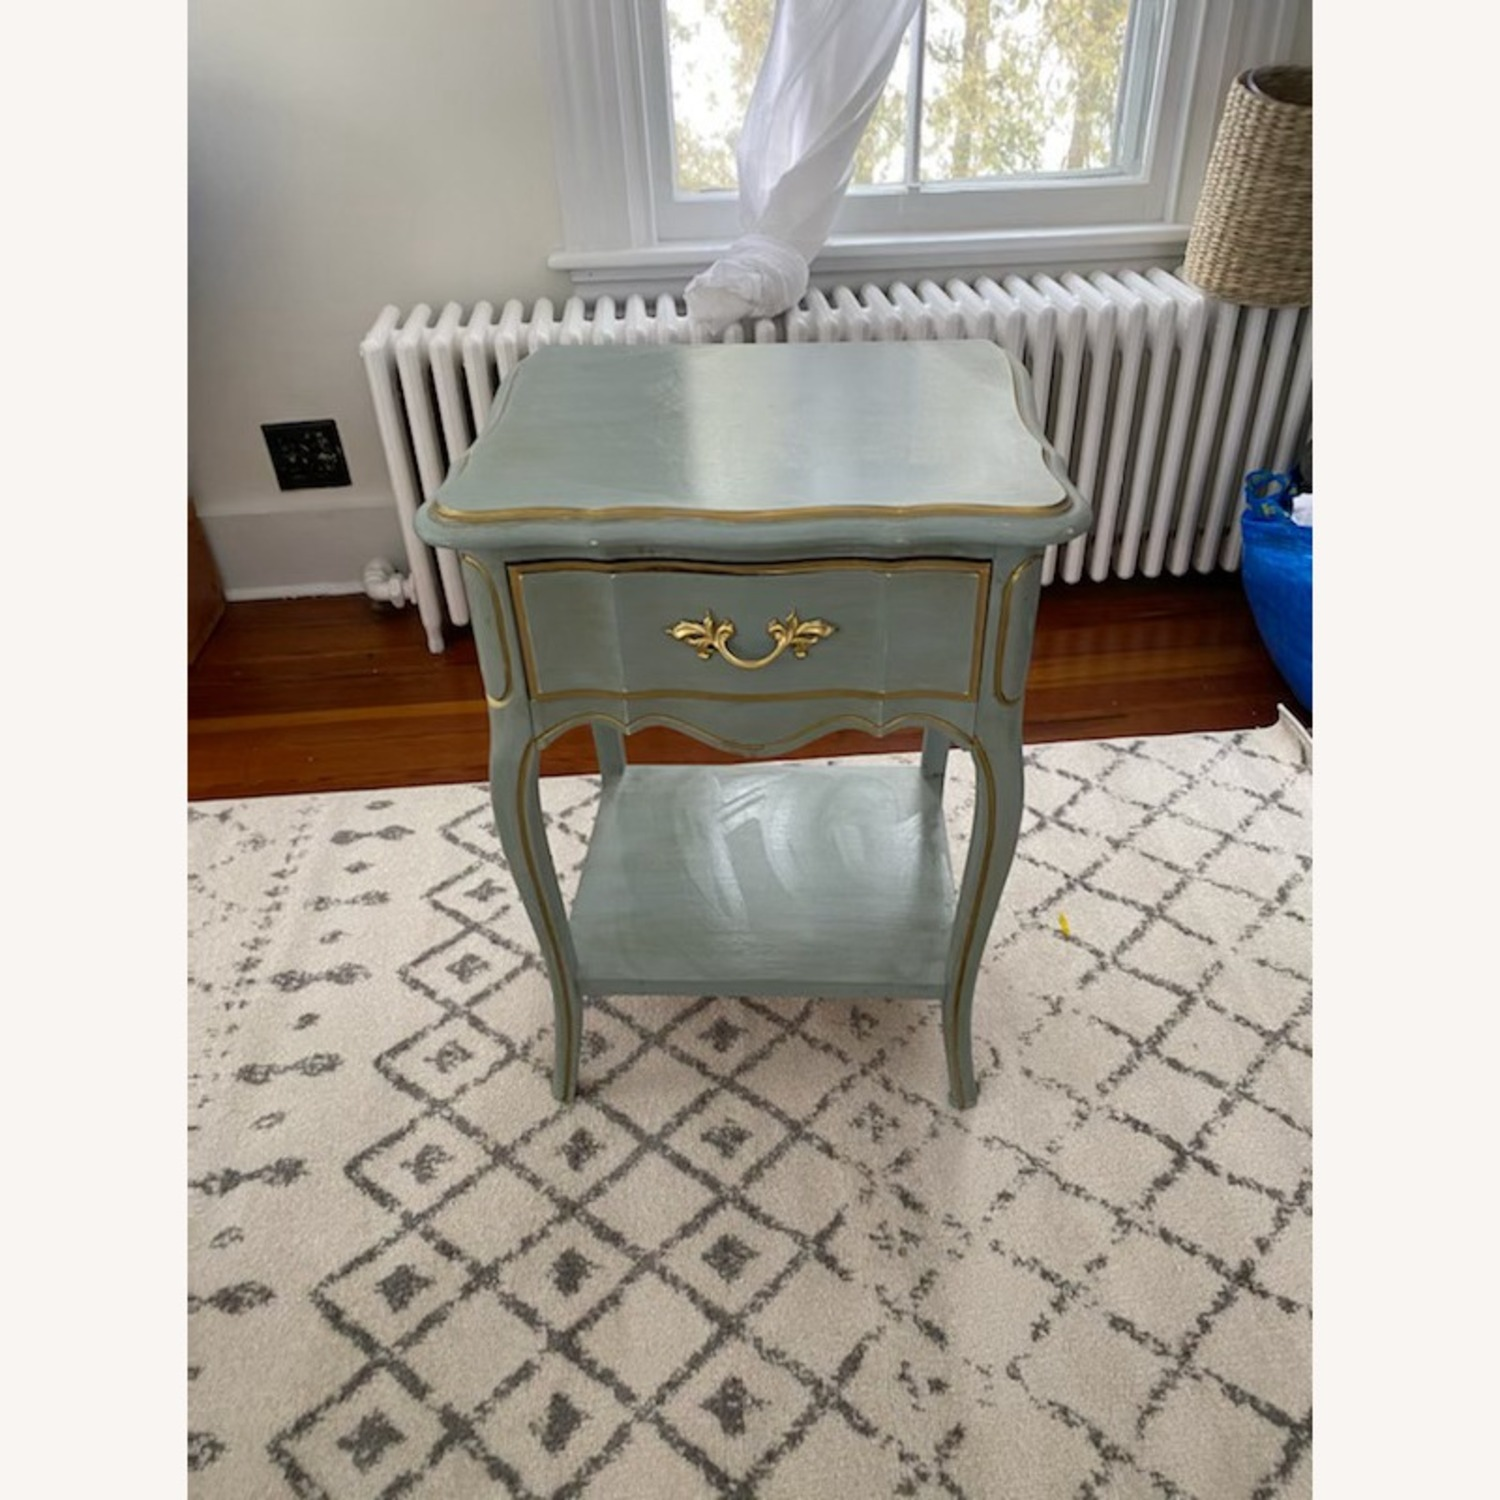 Vintage Blue Nightstand/table with Gold Accents - image-3